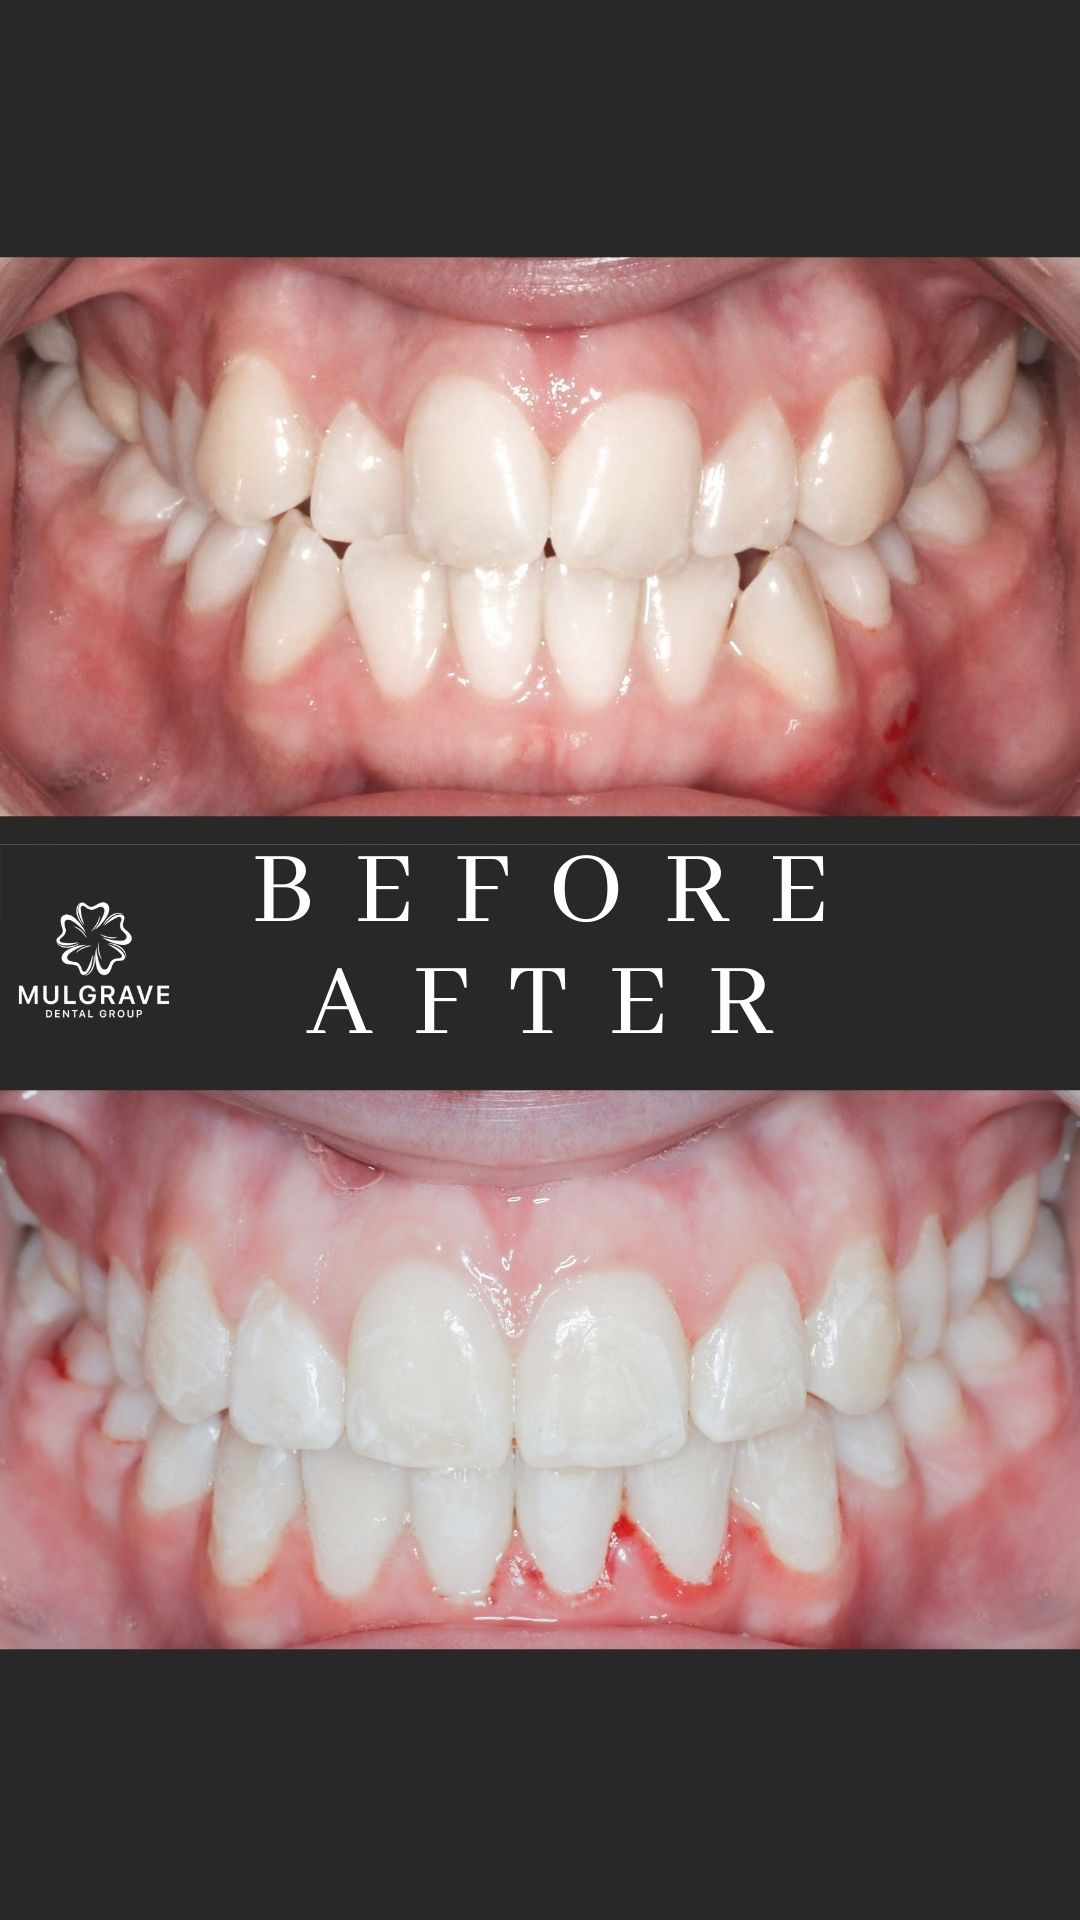 MDG Ortho Before After KAT002